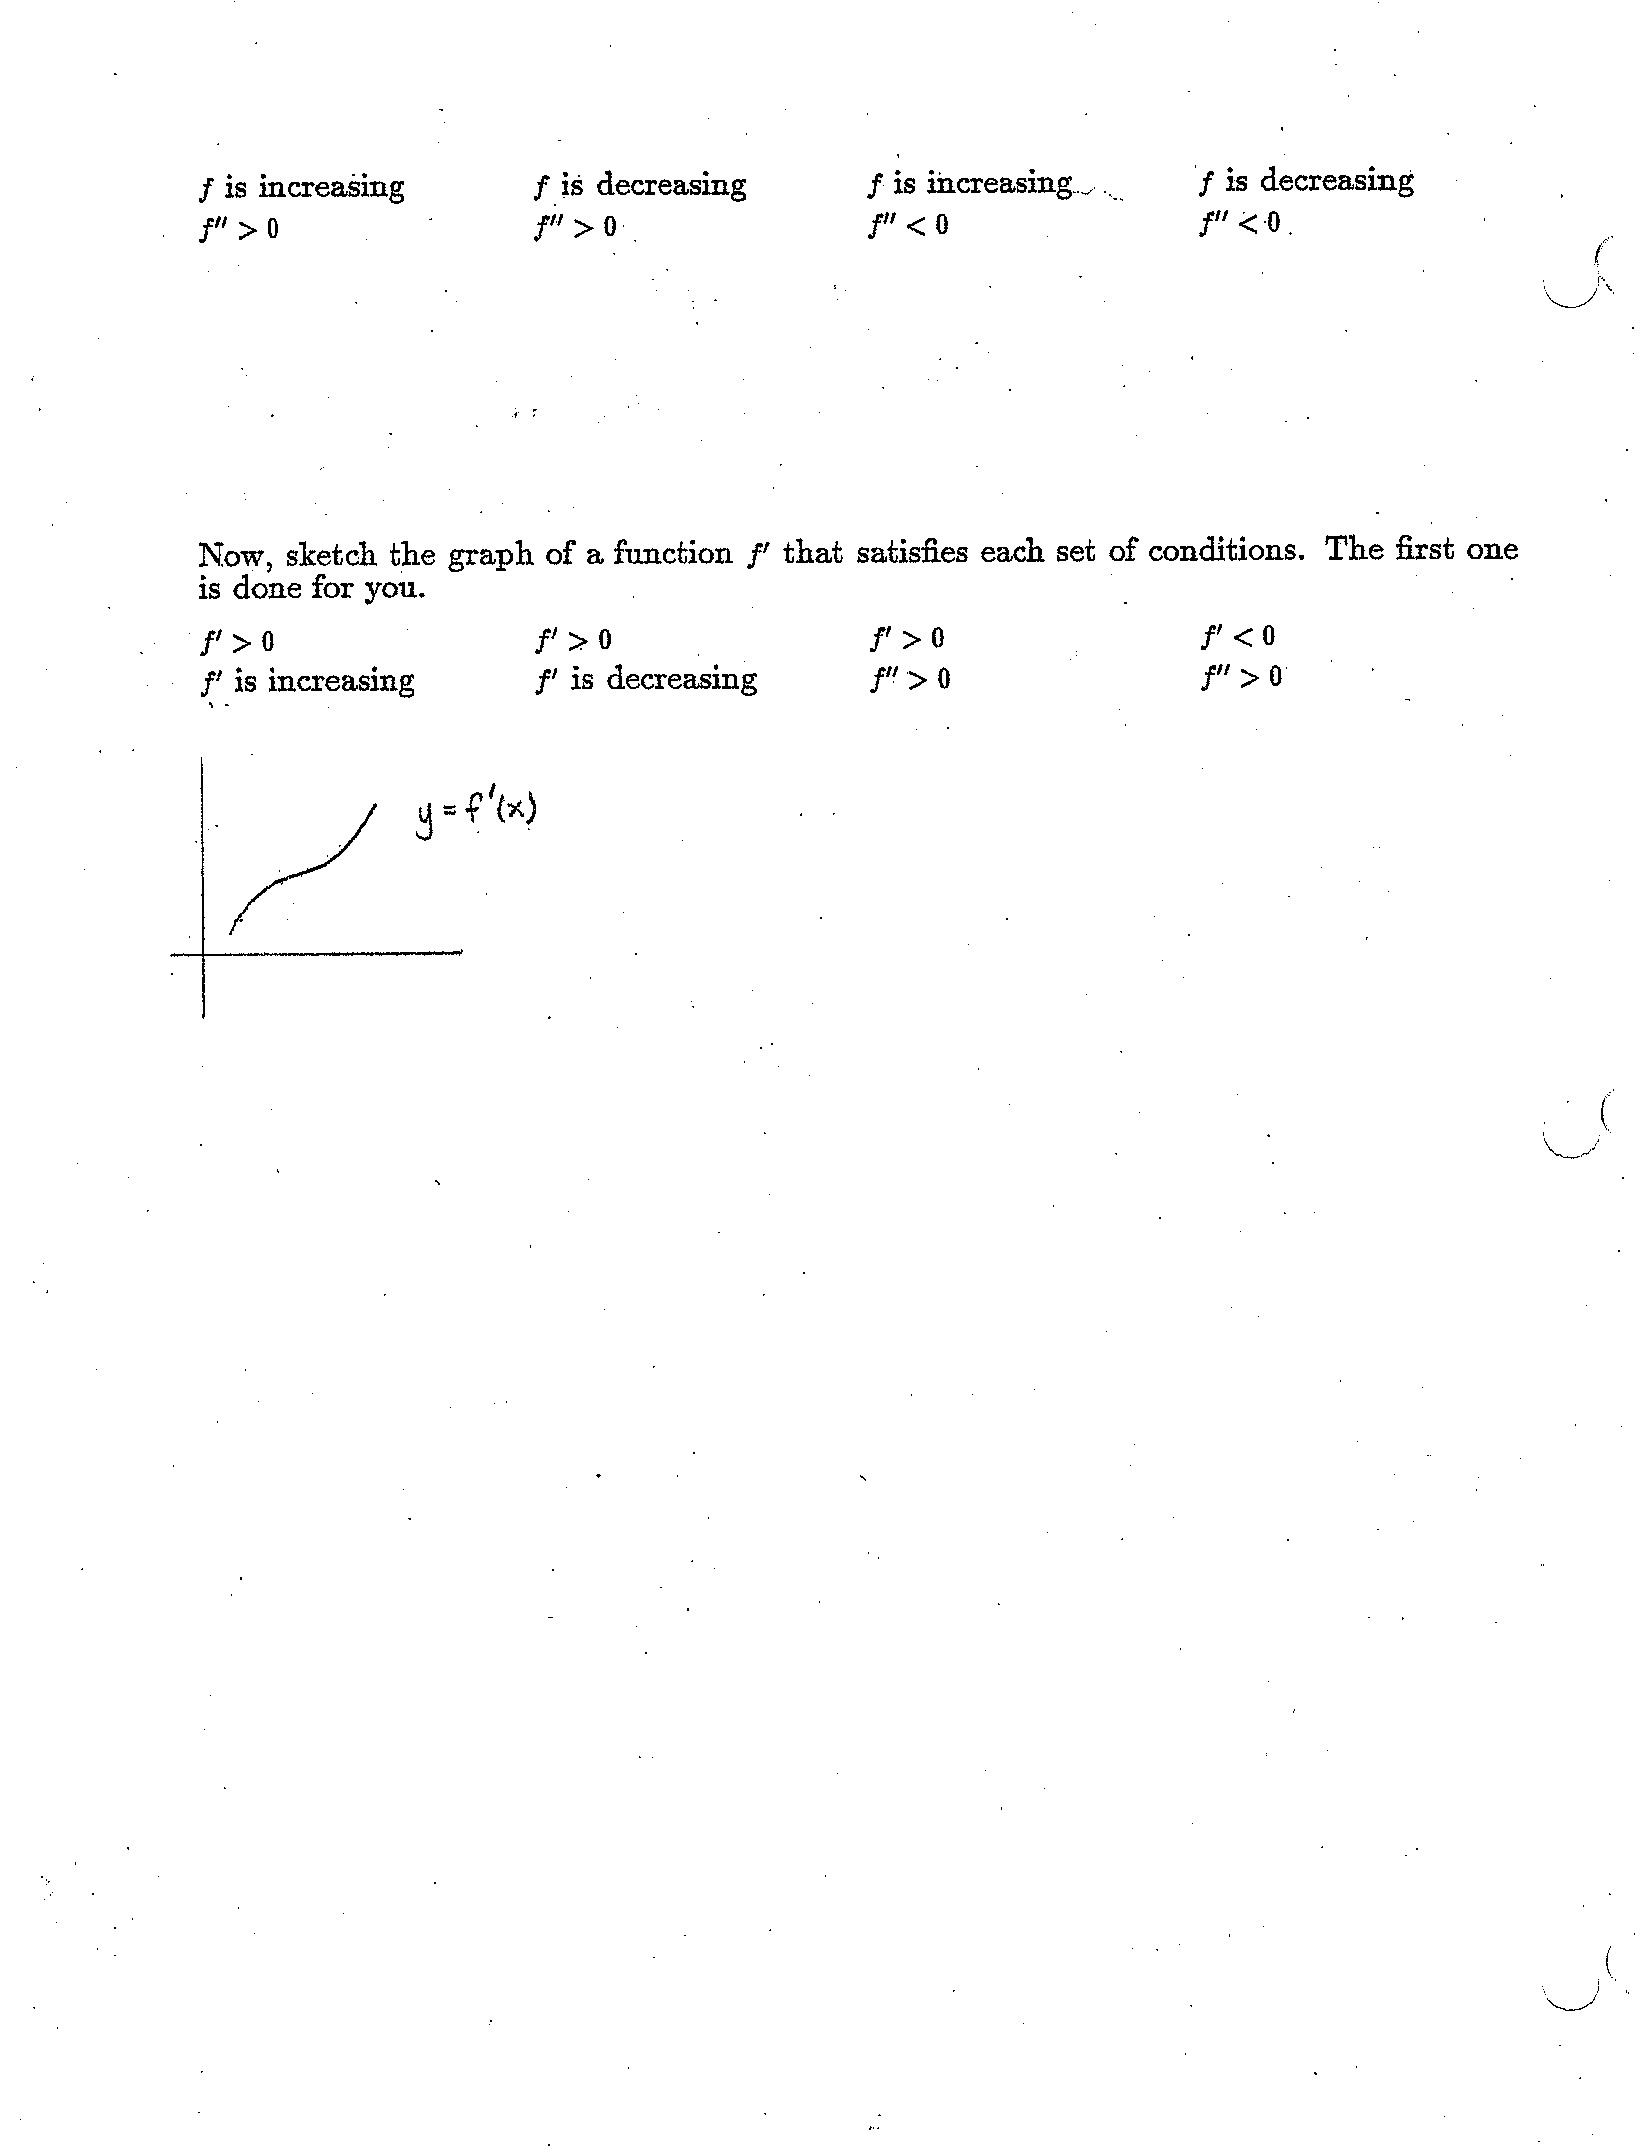 worksheet Second Derivative Worksheet calculus i mathematics daily syllabus practice with functionfirst derivativesecond derivative behavior worksheet